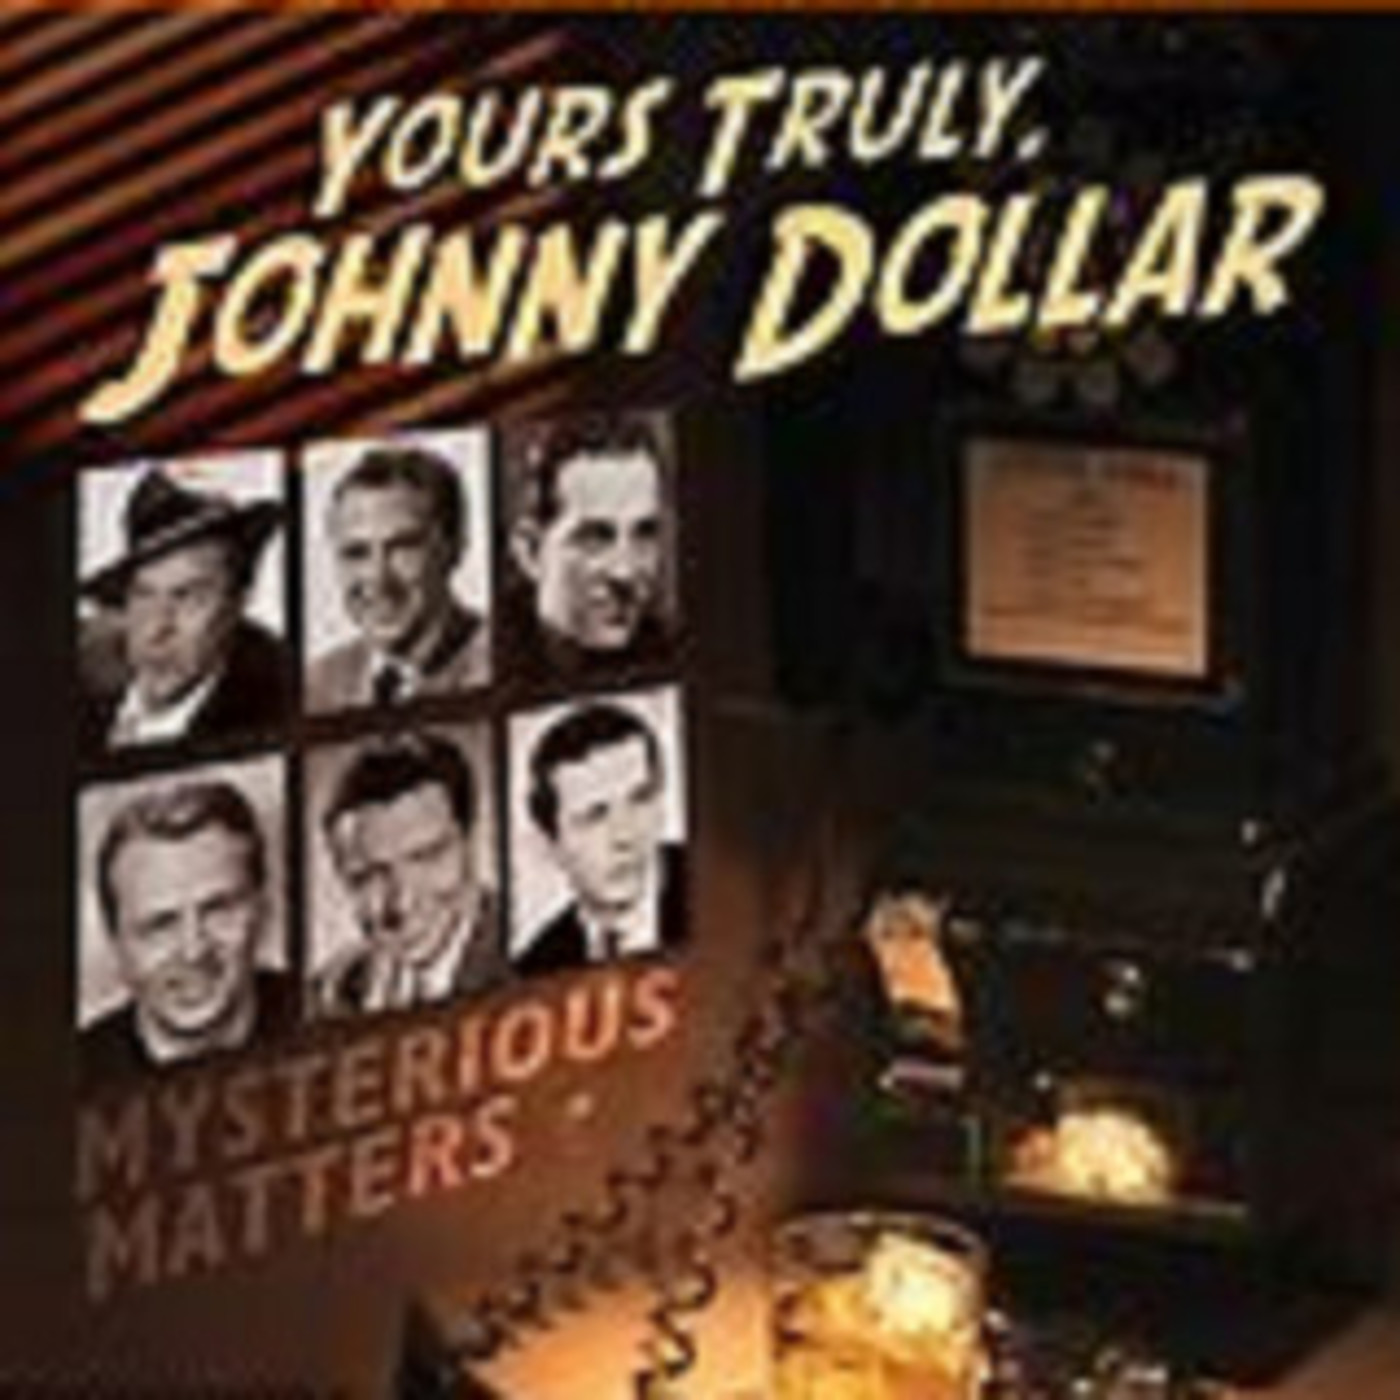 Yours Truly, Johnny Dollar - 091662, episode 809 - The No Matter Matter